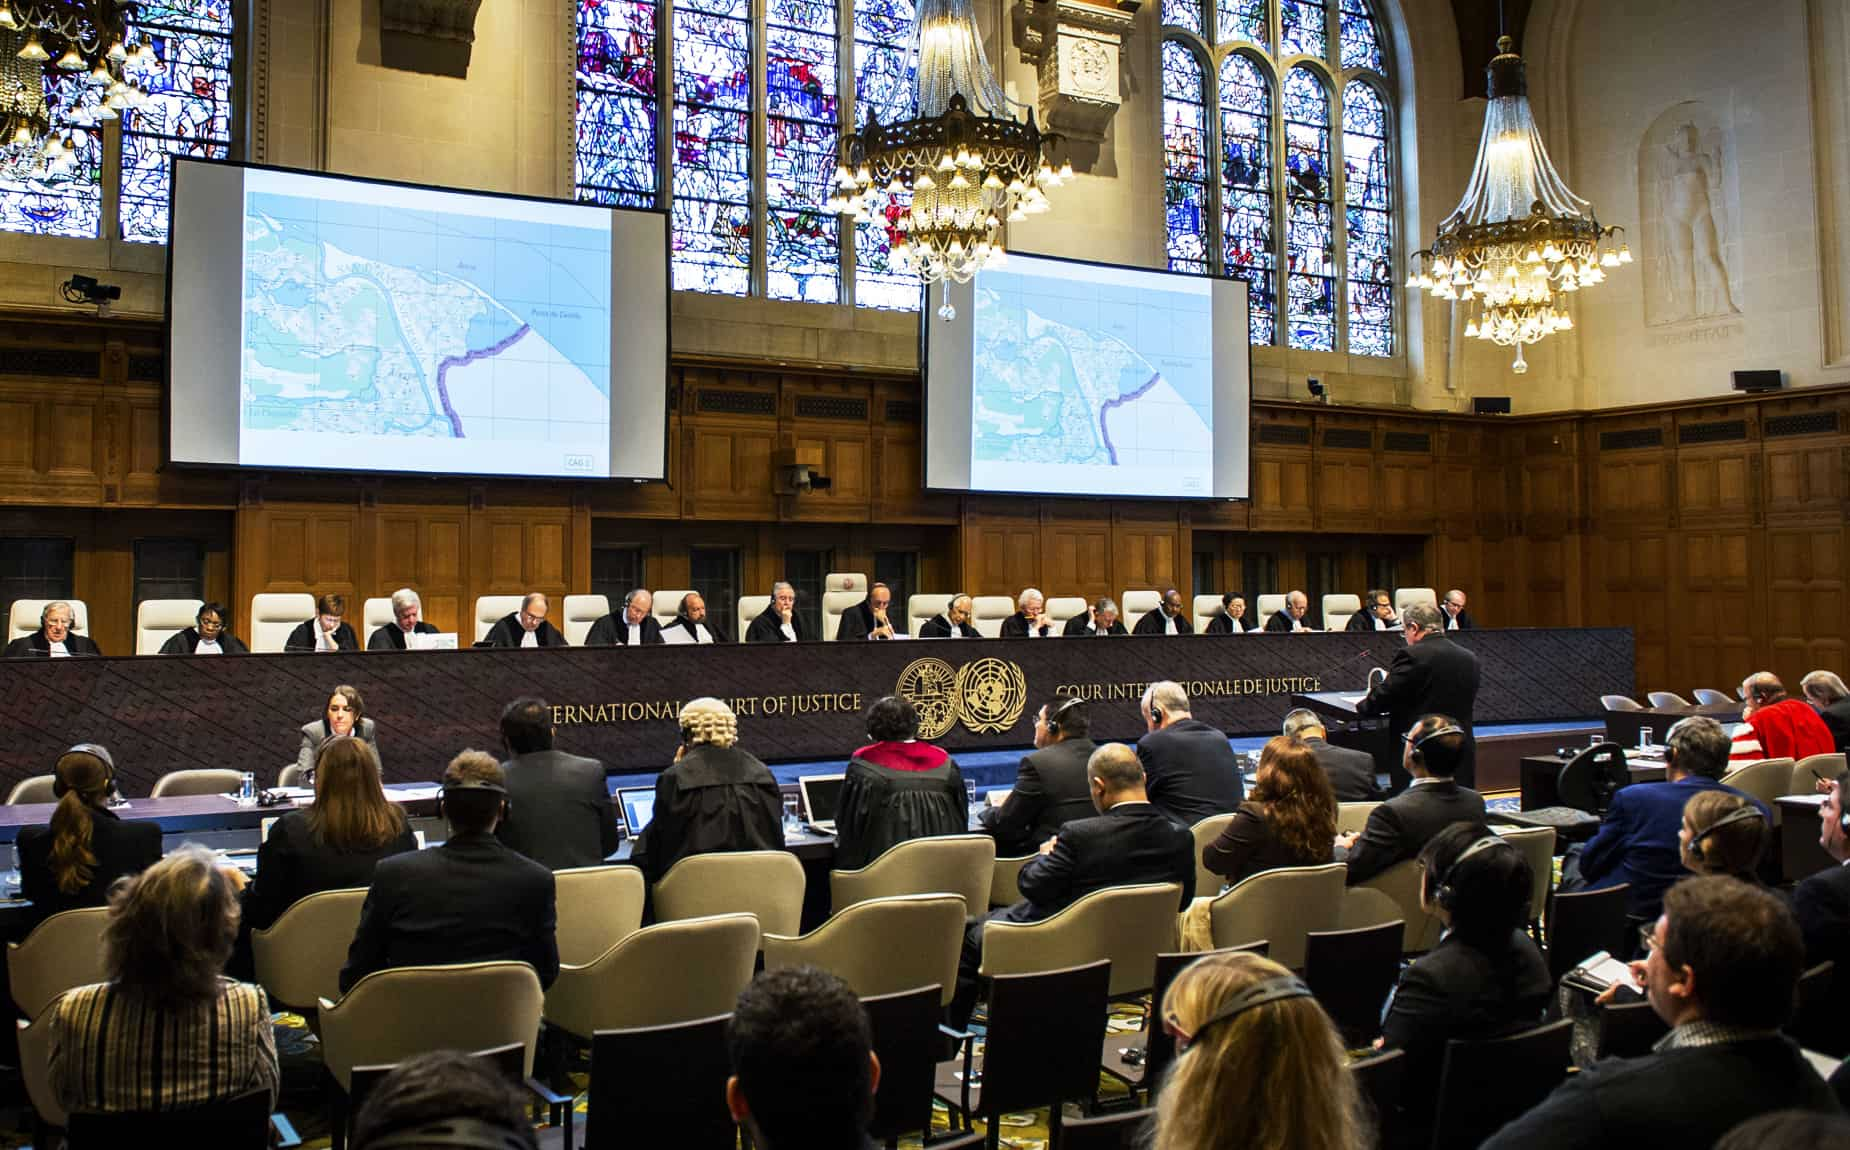 International Court of Justice - The Hague